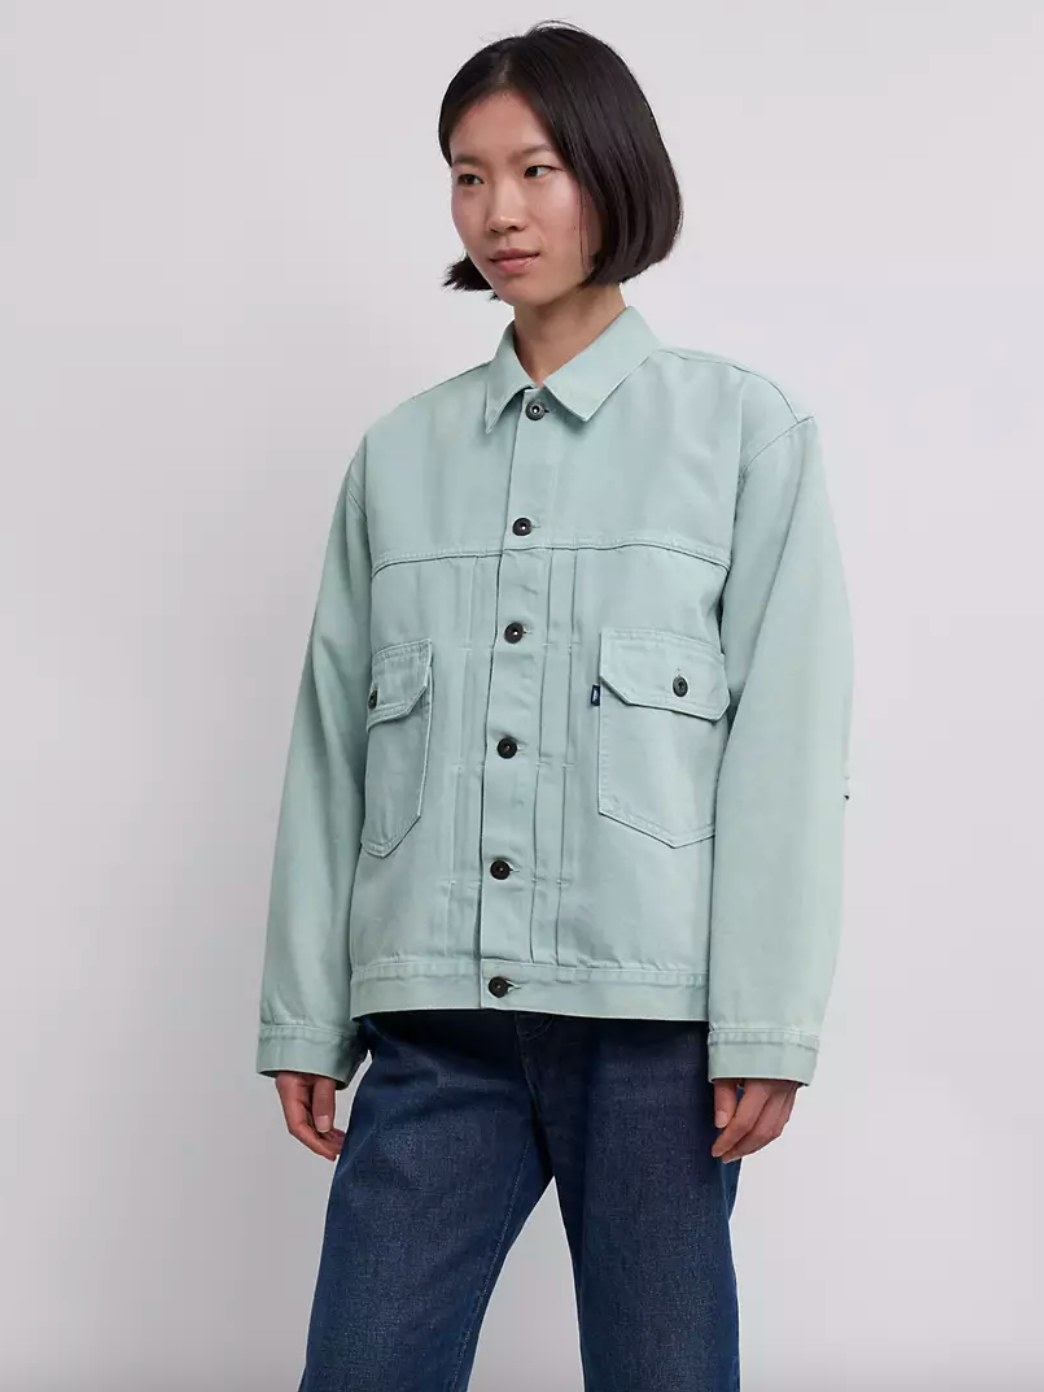 The jacket in glimmer blue